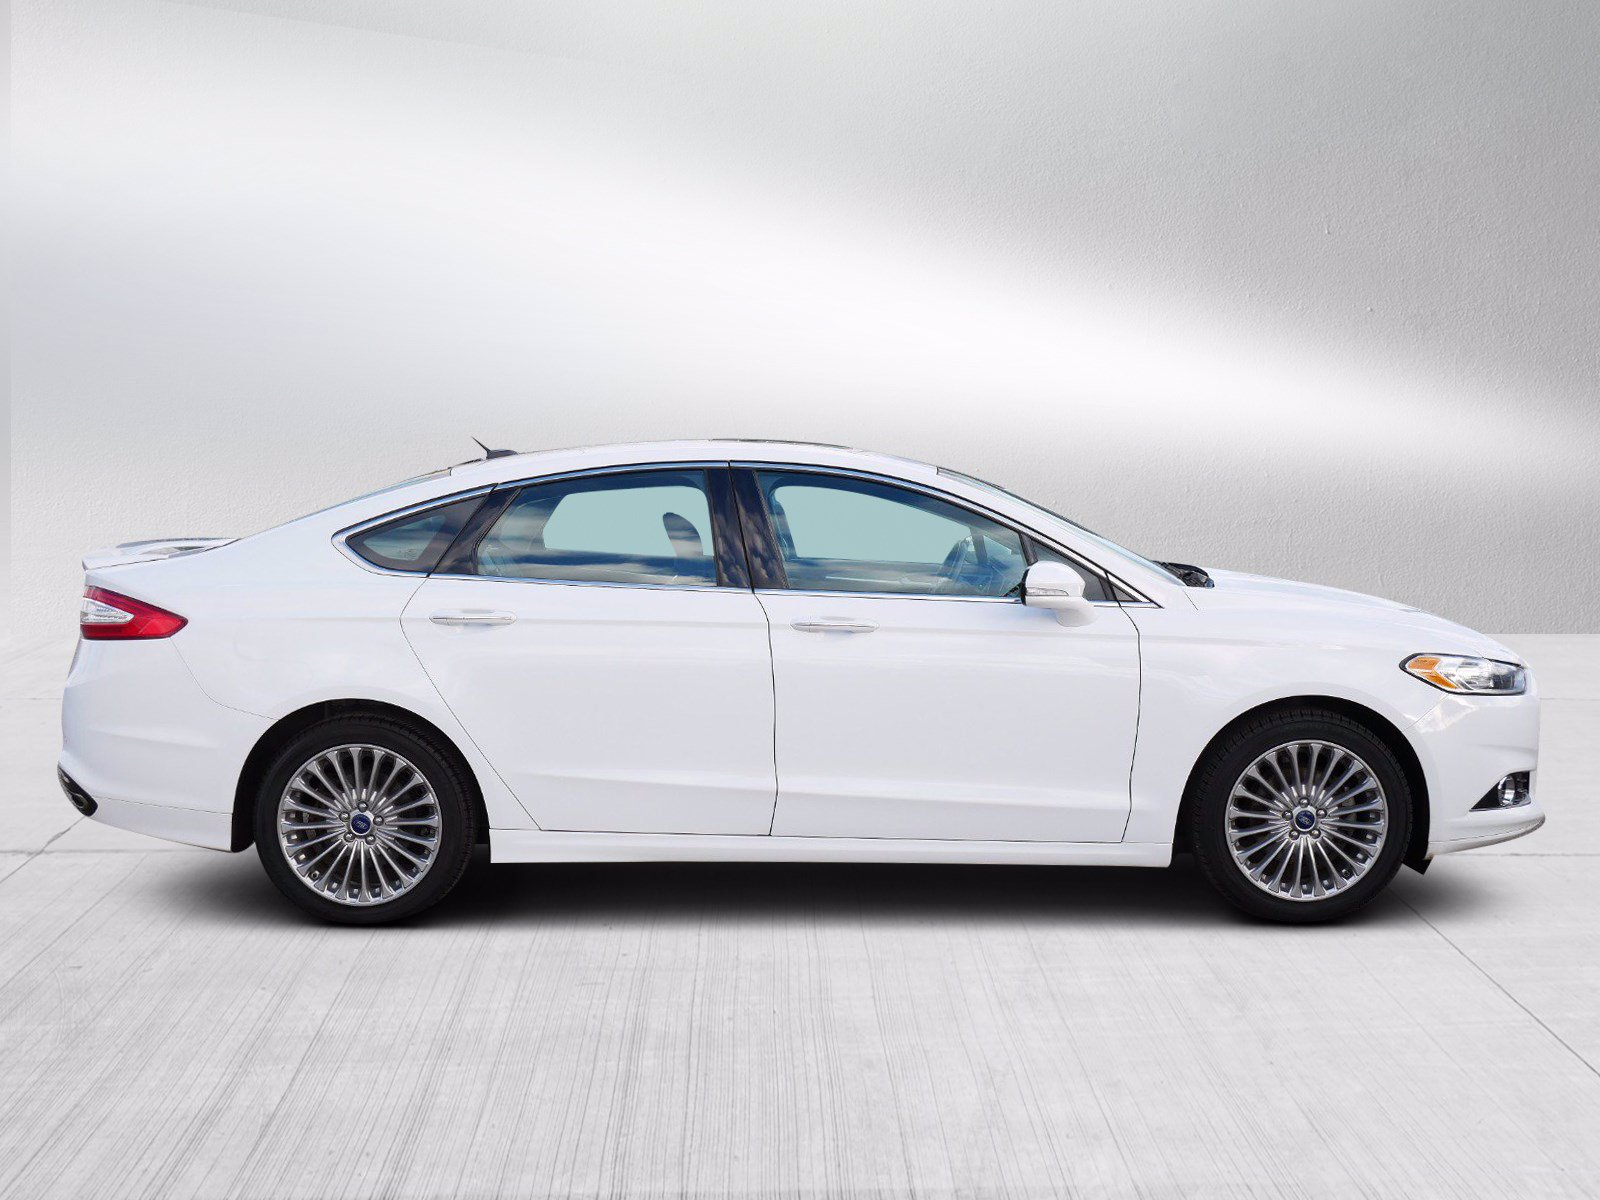 Used 2014 Ford Fusion Titanium with VIN 3FA6P0K9XER257407 for sale in Bloomington, Minnesota